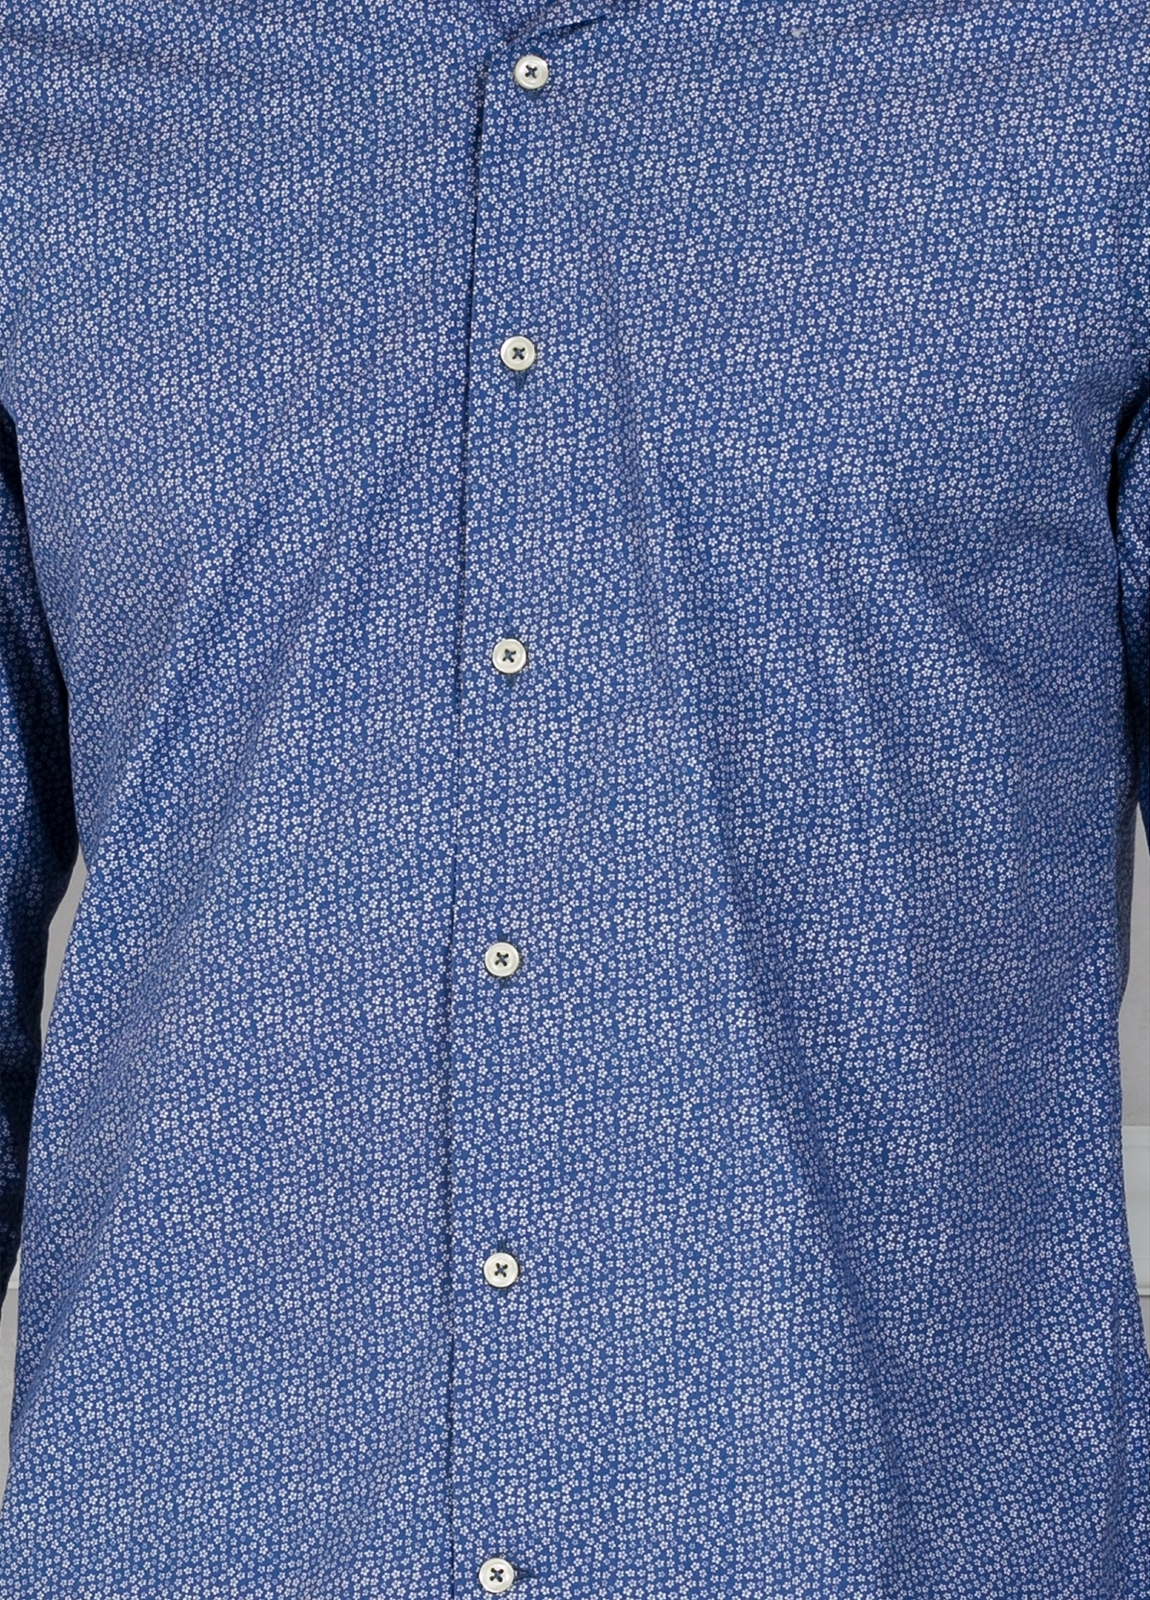 Camisa Leisure Wear SLIM FIT modelo PORTO micro dibujo color azul. 100% Algodón. - Ítem2